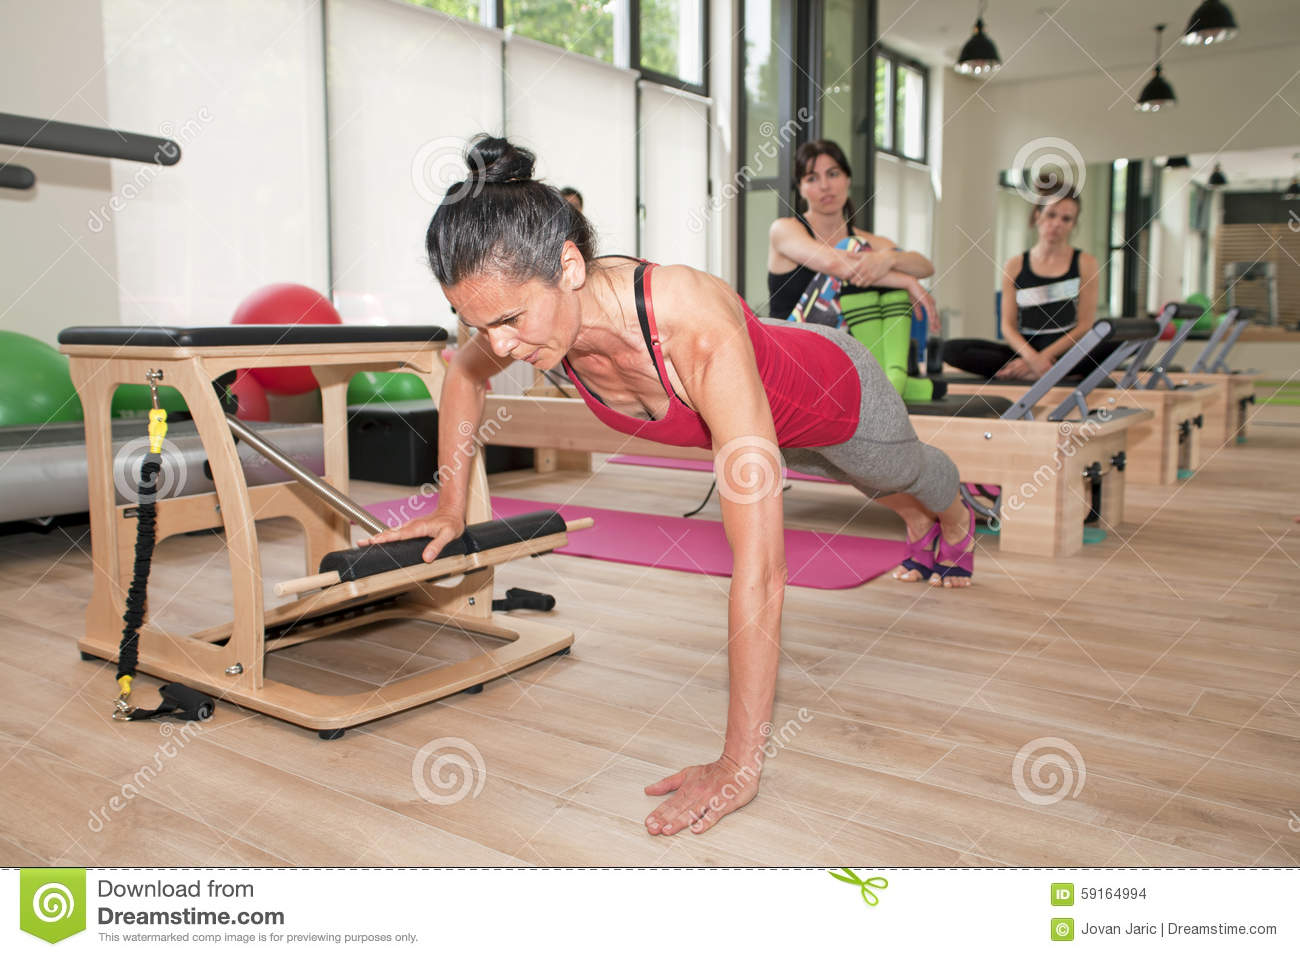 chair gym workout videos covers perth cheap stock images pilates on image 59164994